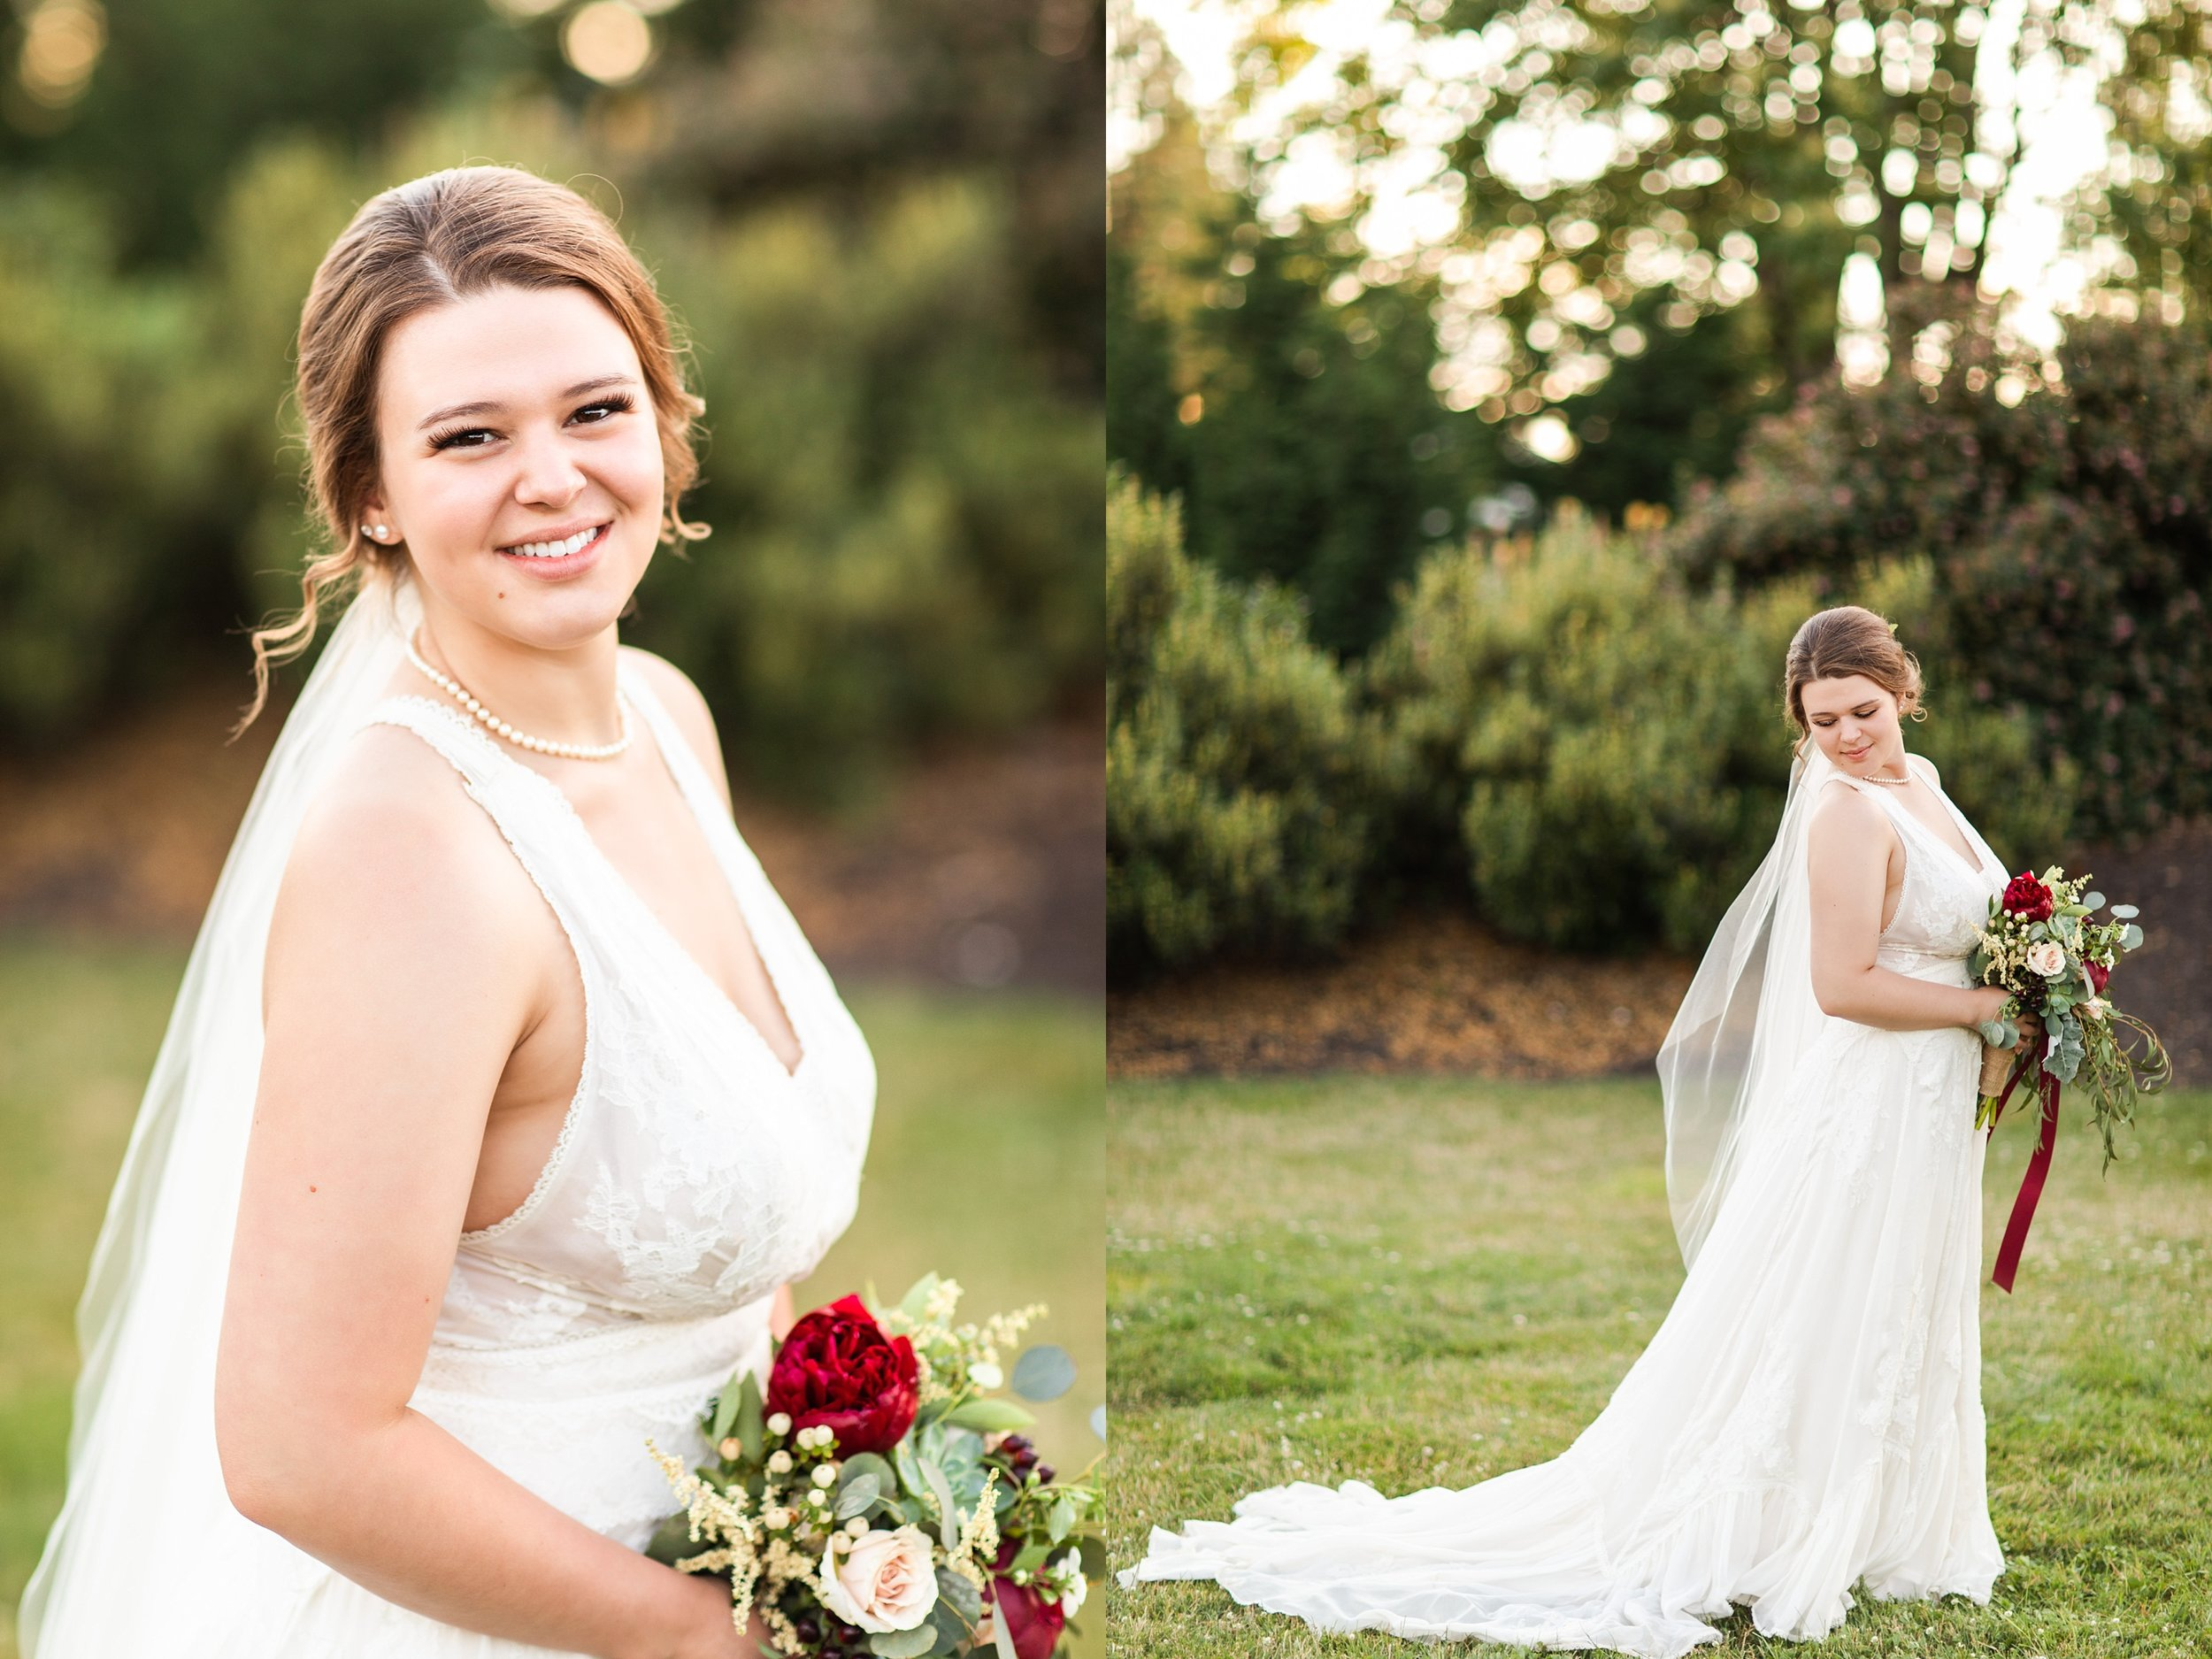 Bridal Portrait Photographer Jessica McBroom